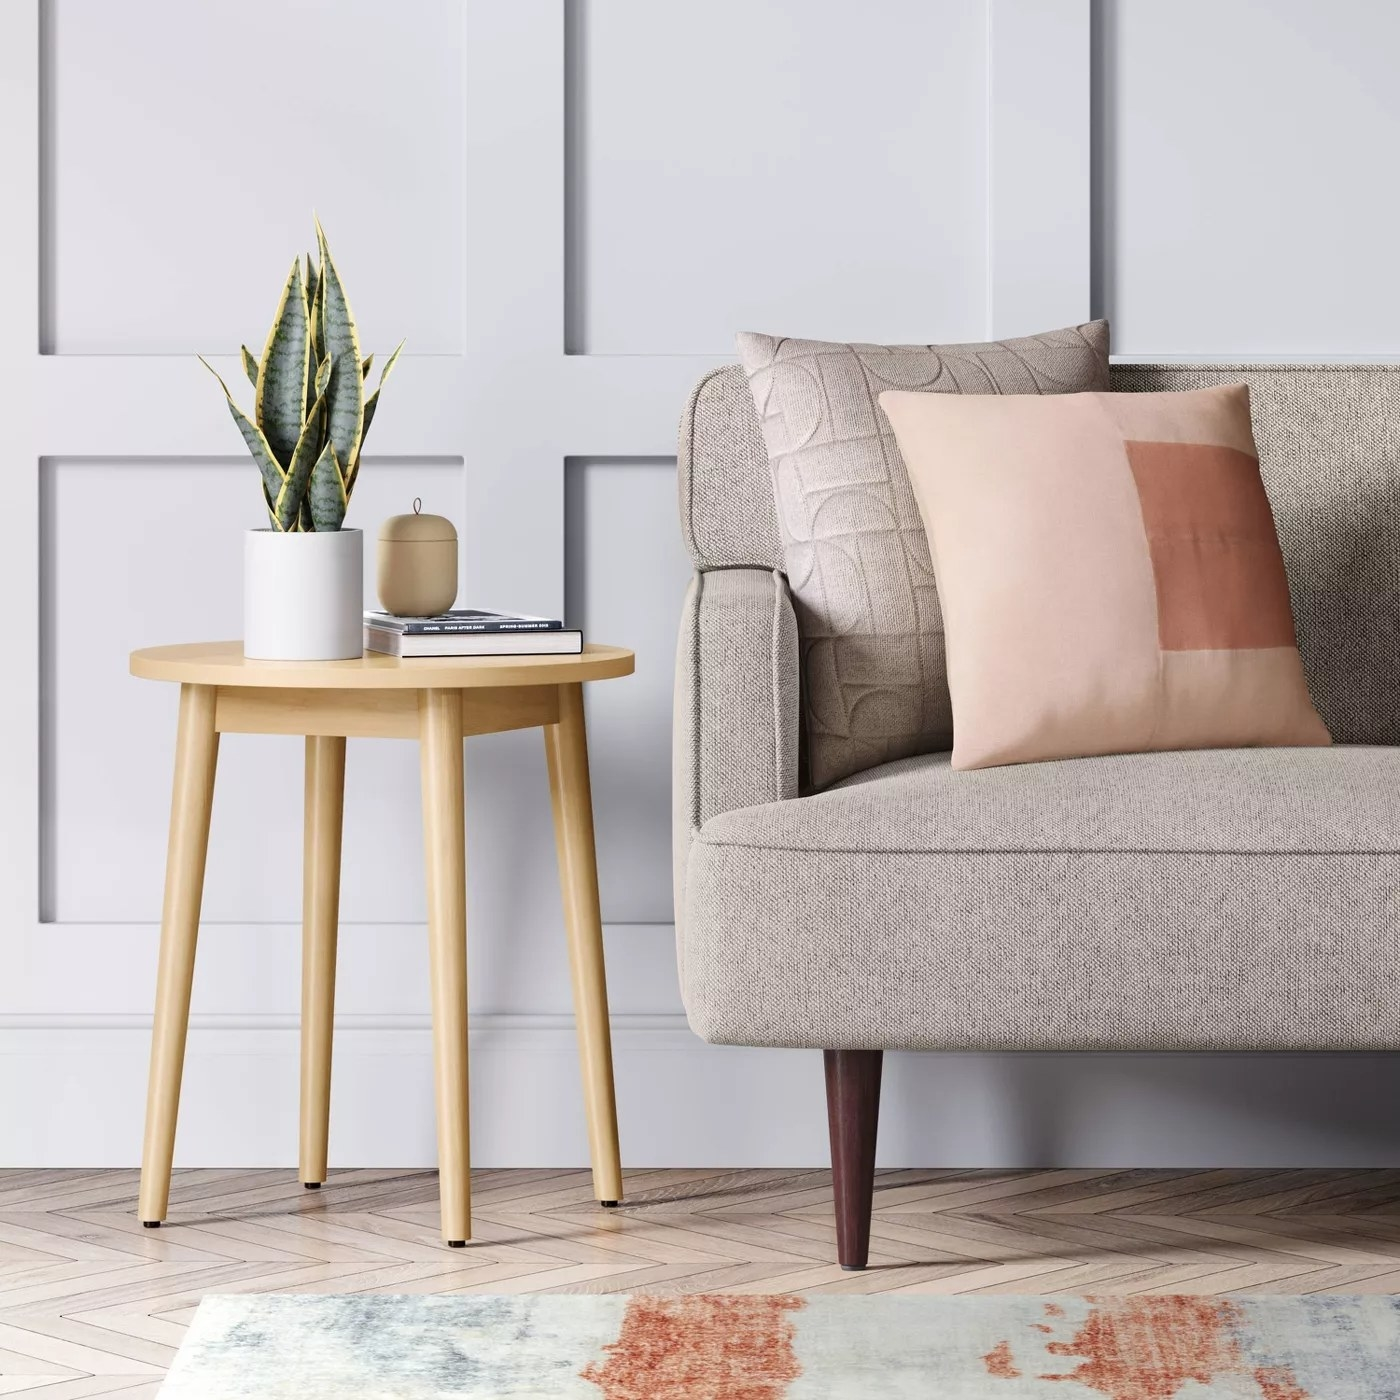 The end table placed next to a couch